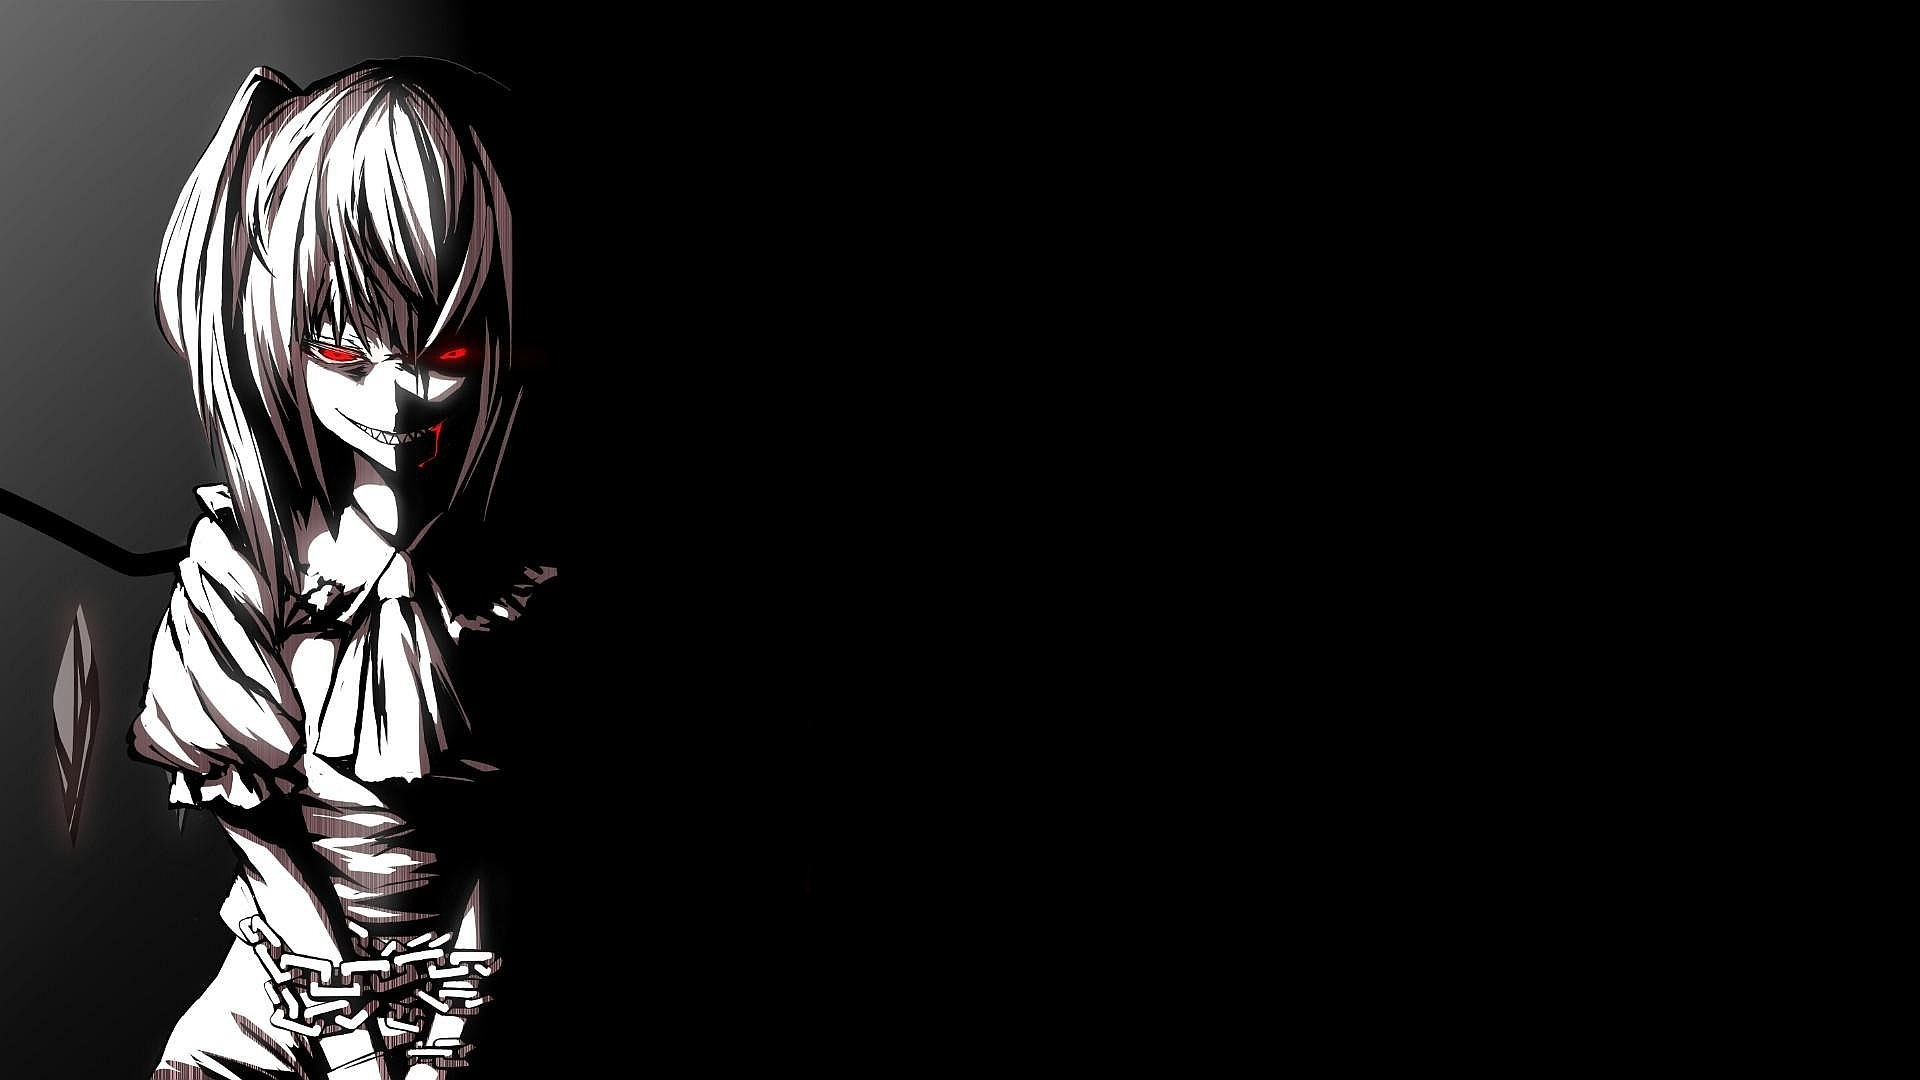 X X Wallpaper Touhou Collection Girl Blood Circuit Evil Smile